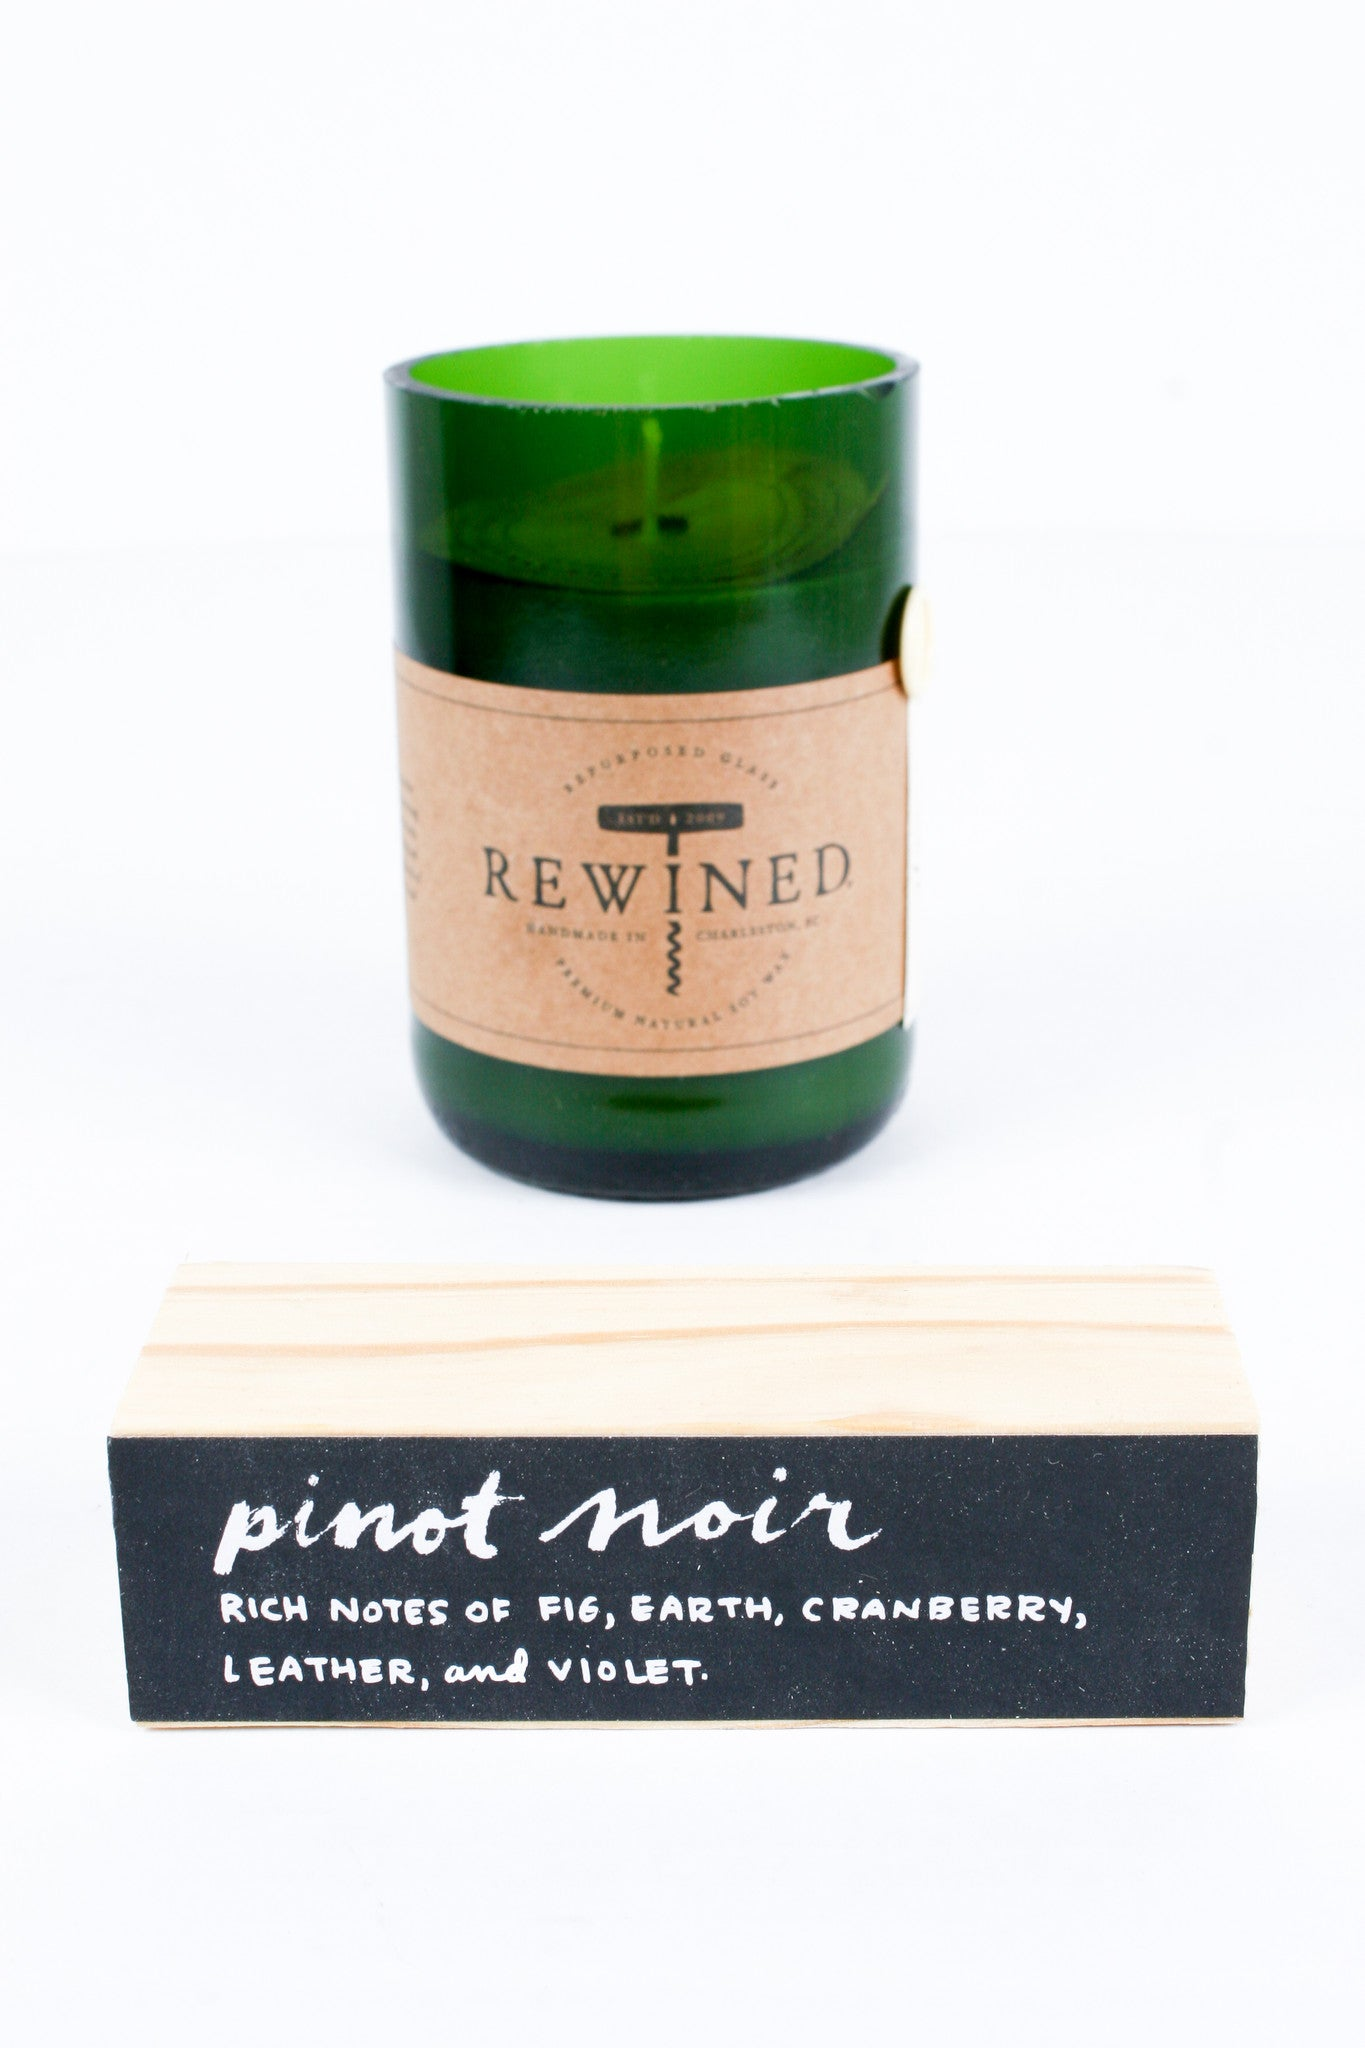 Rewined Candles - The Loft Boutique - Gifts  - 5